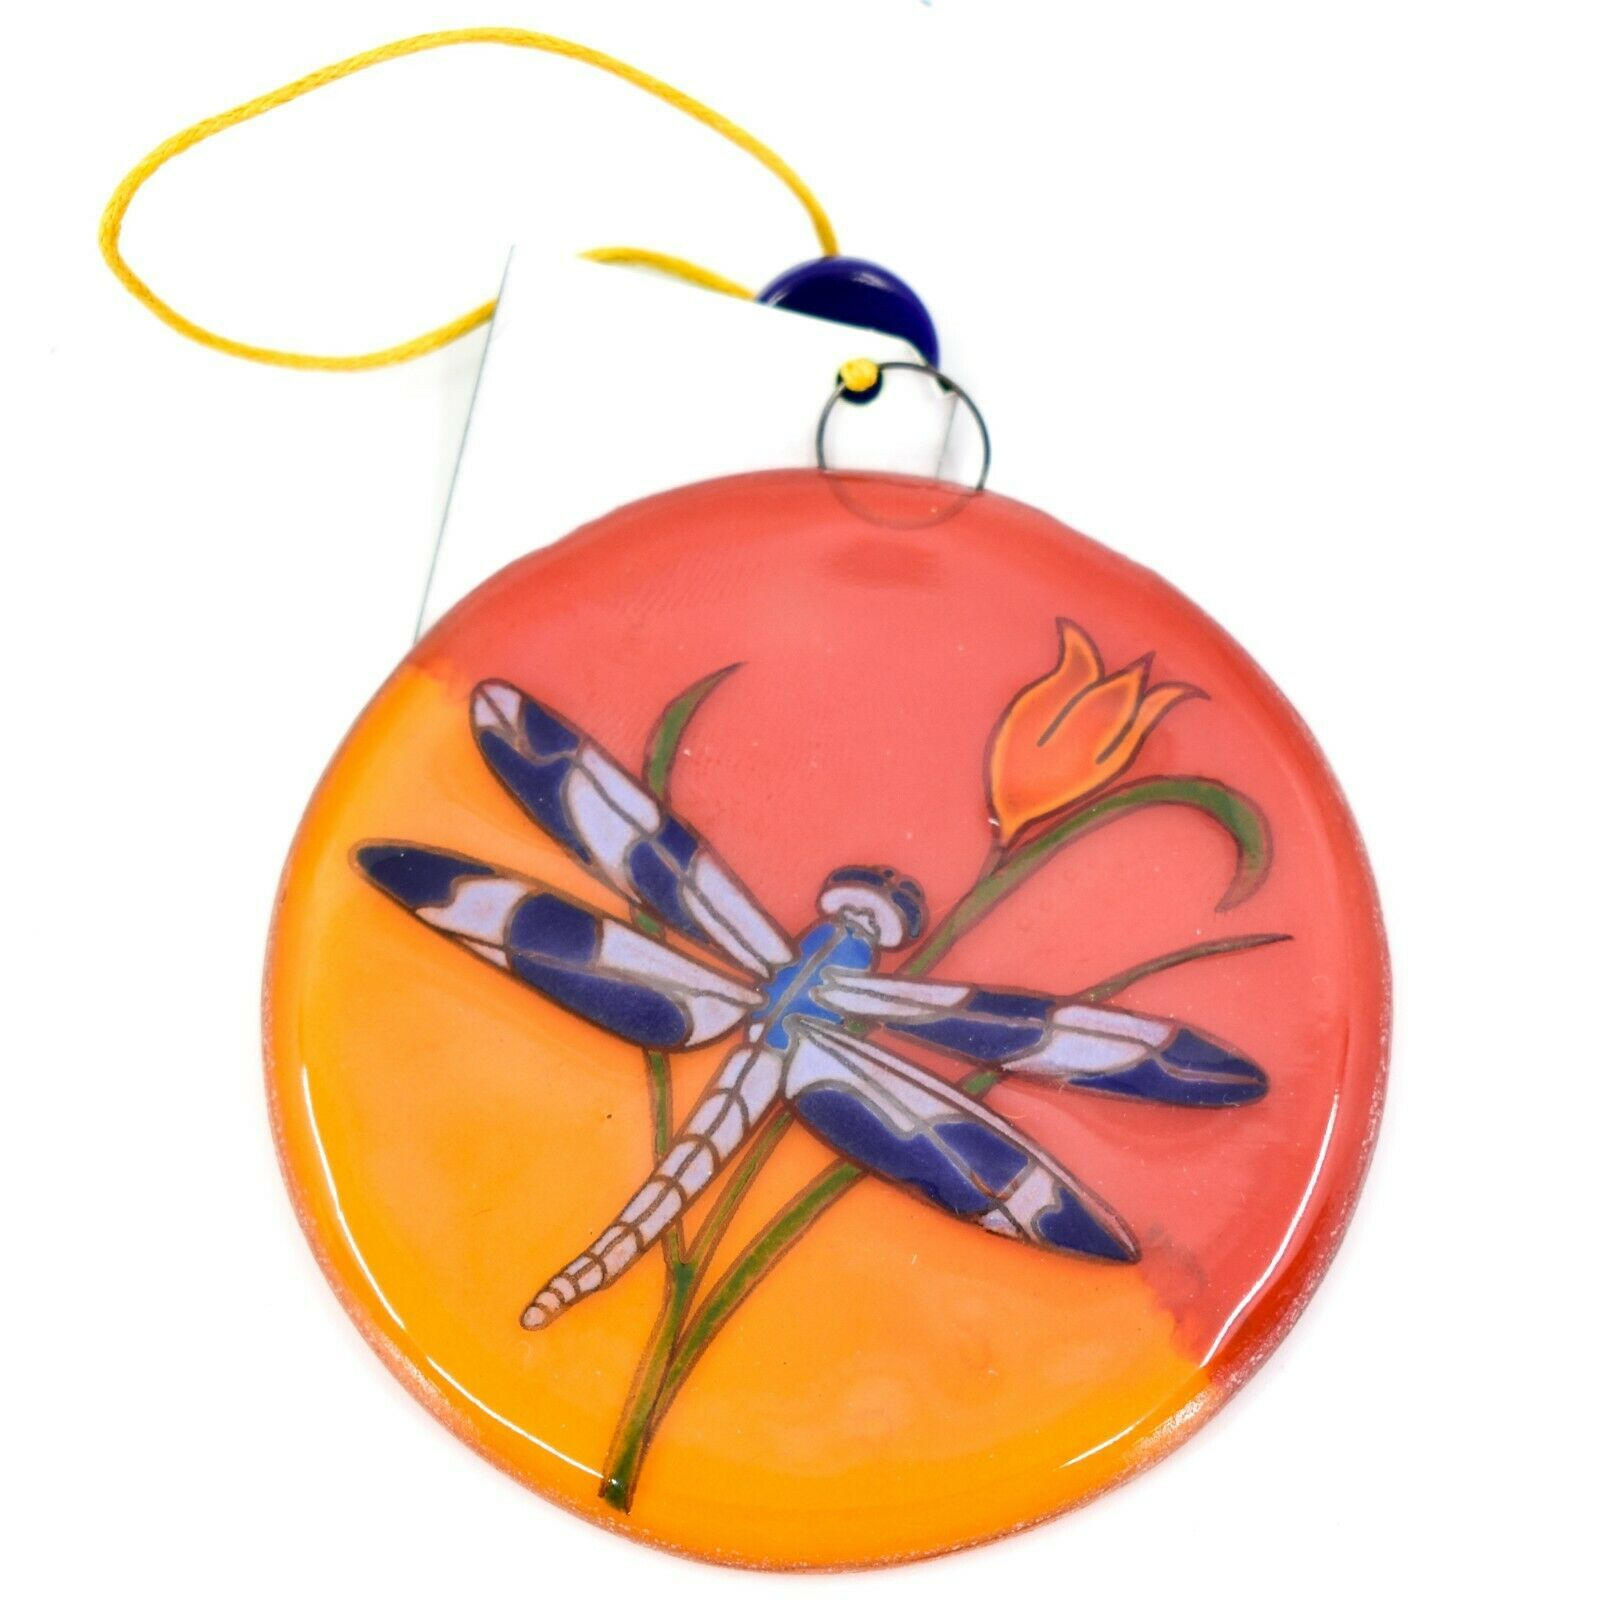 Dragonfly Orange Sunset Fused Art Glass Ornament Handmade in Ecuador